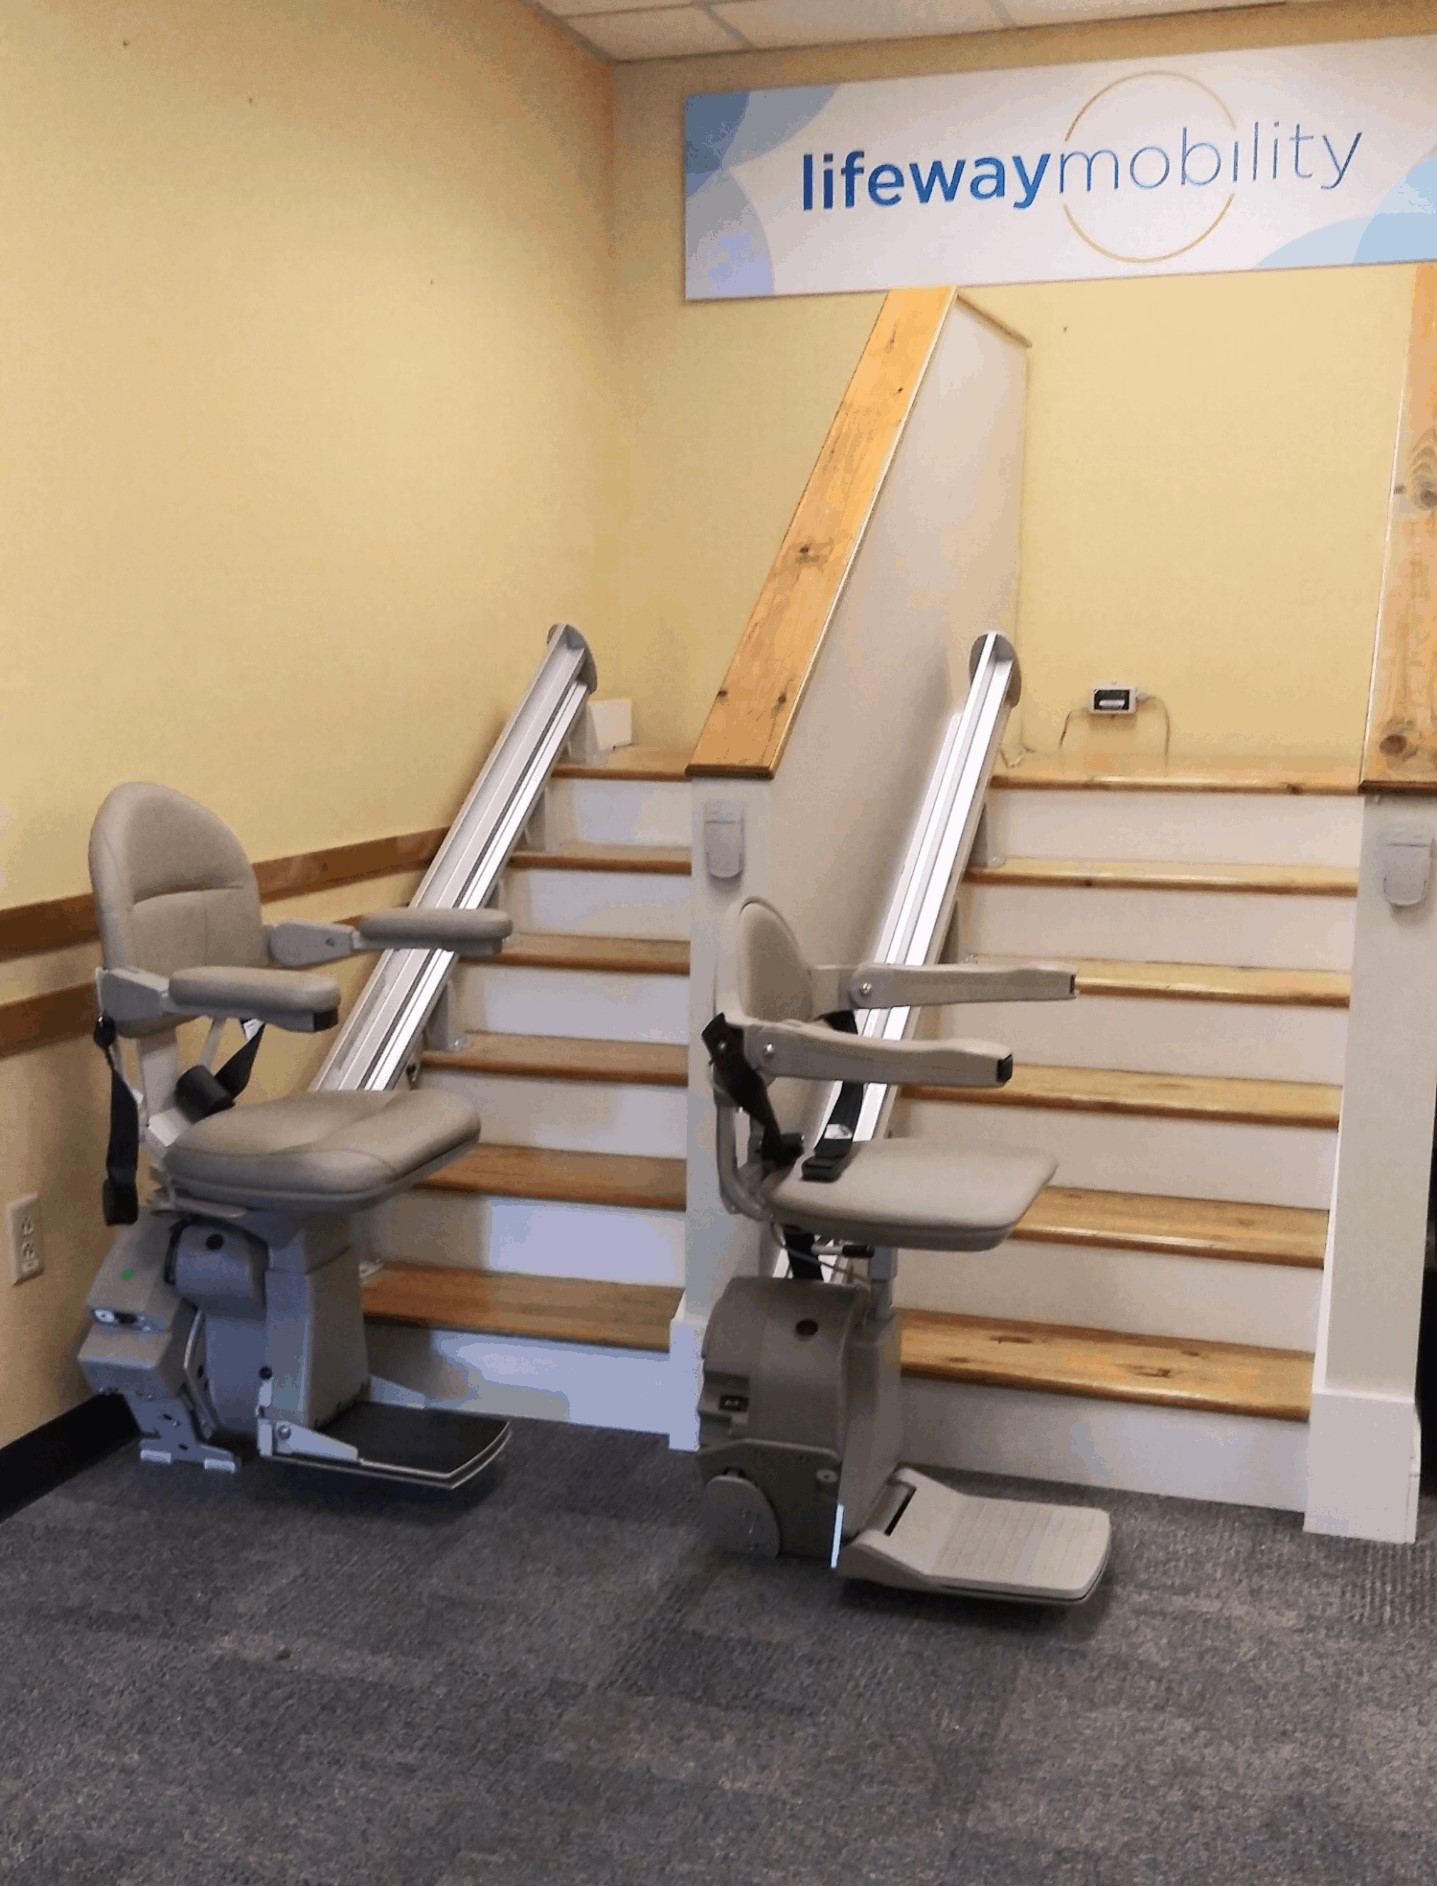 Bruno straight rail stair lifts in Lifeway MA Showroom